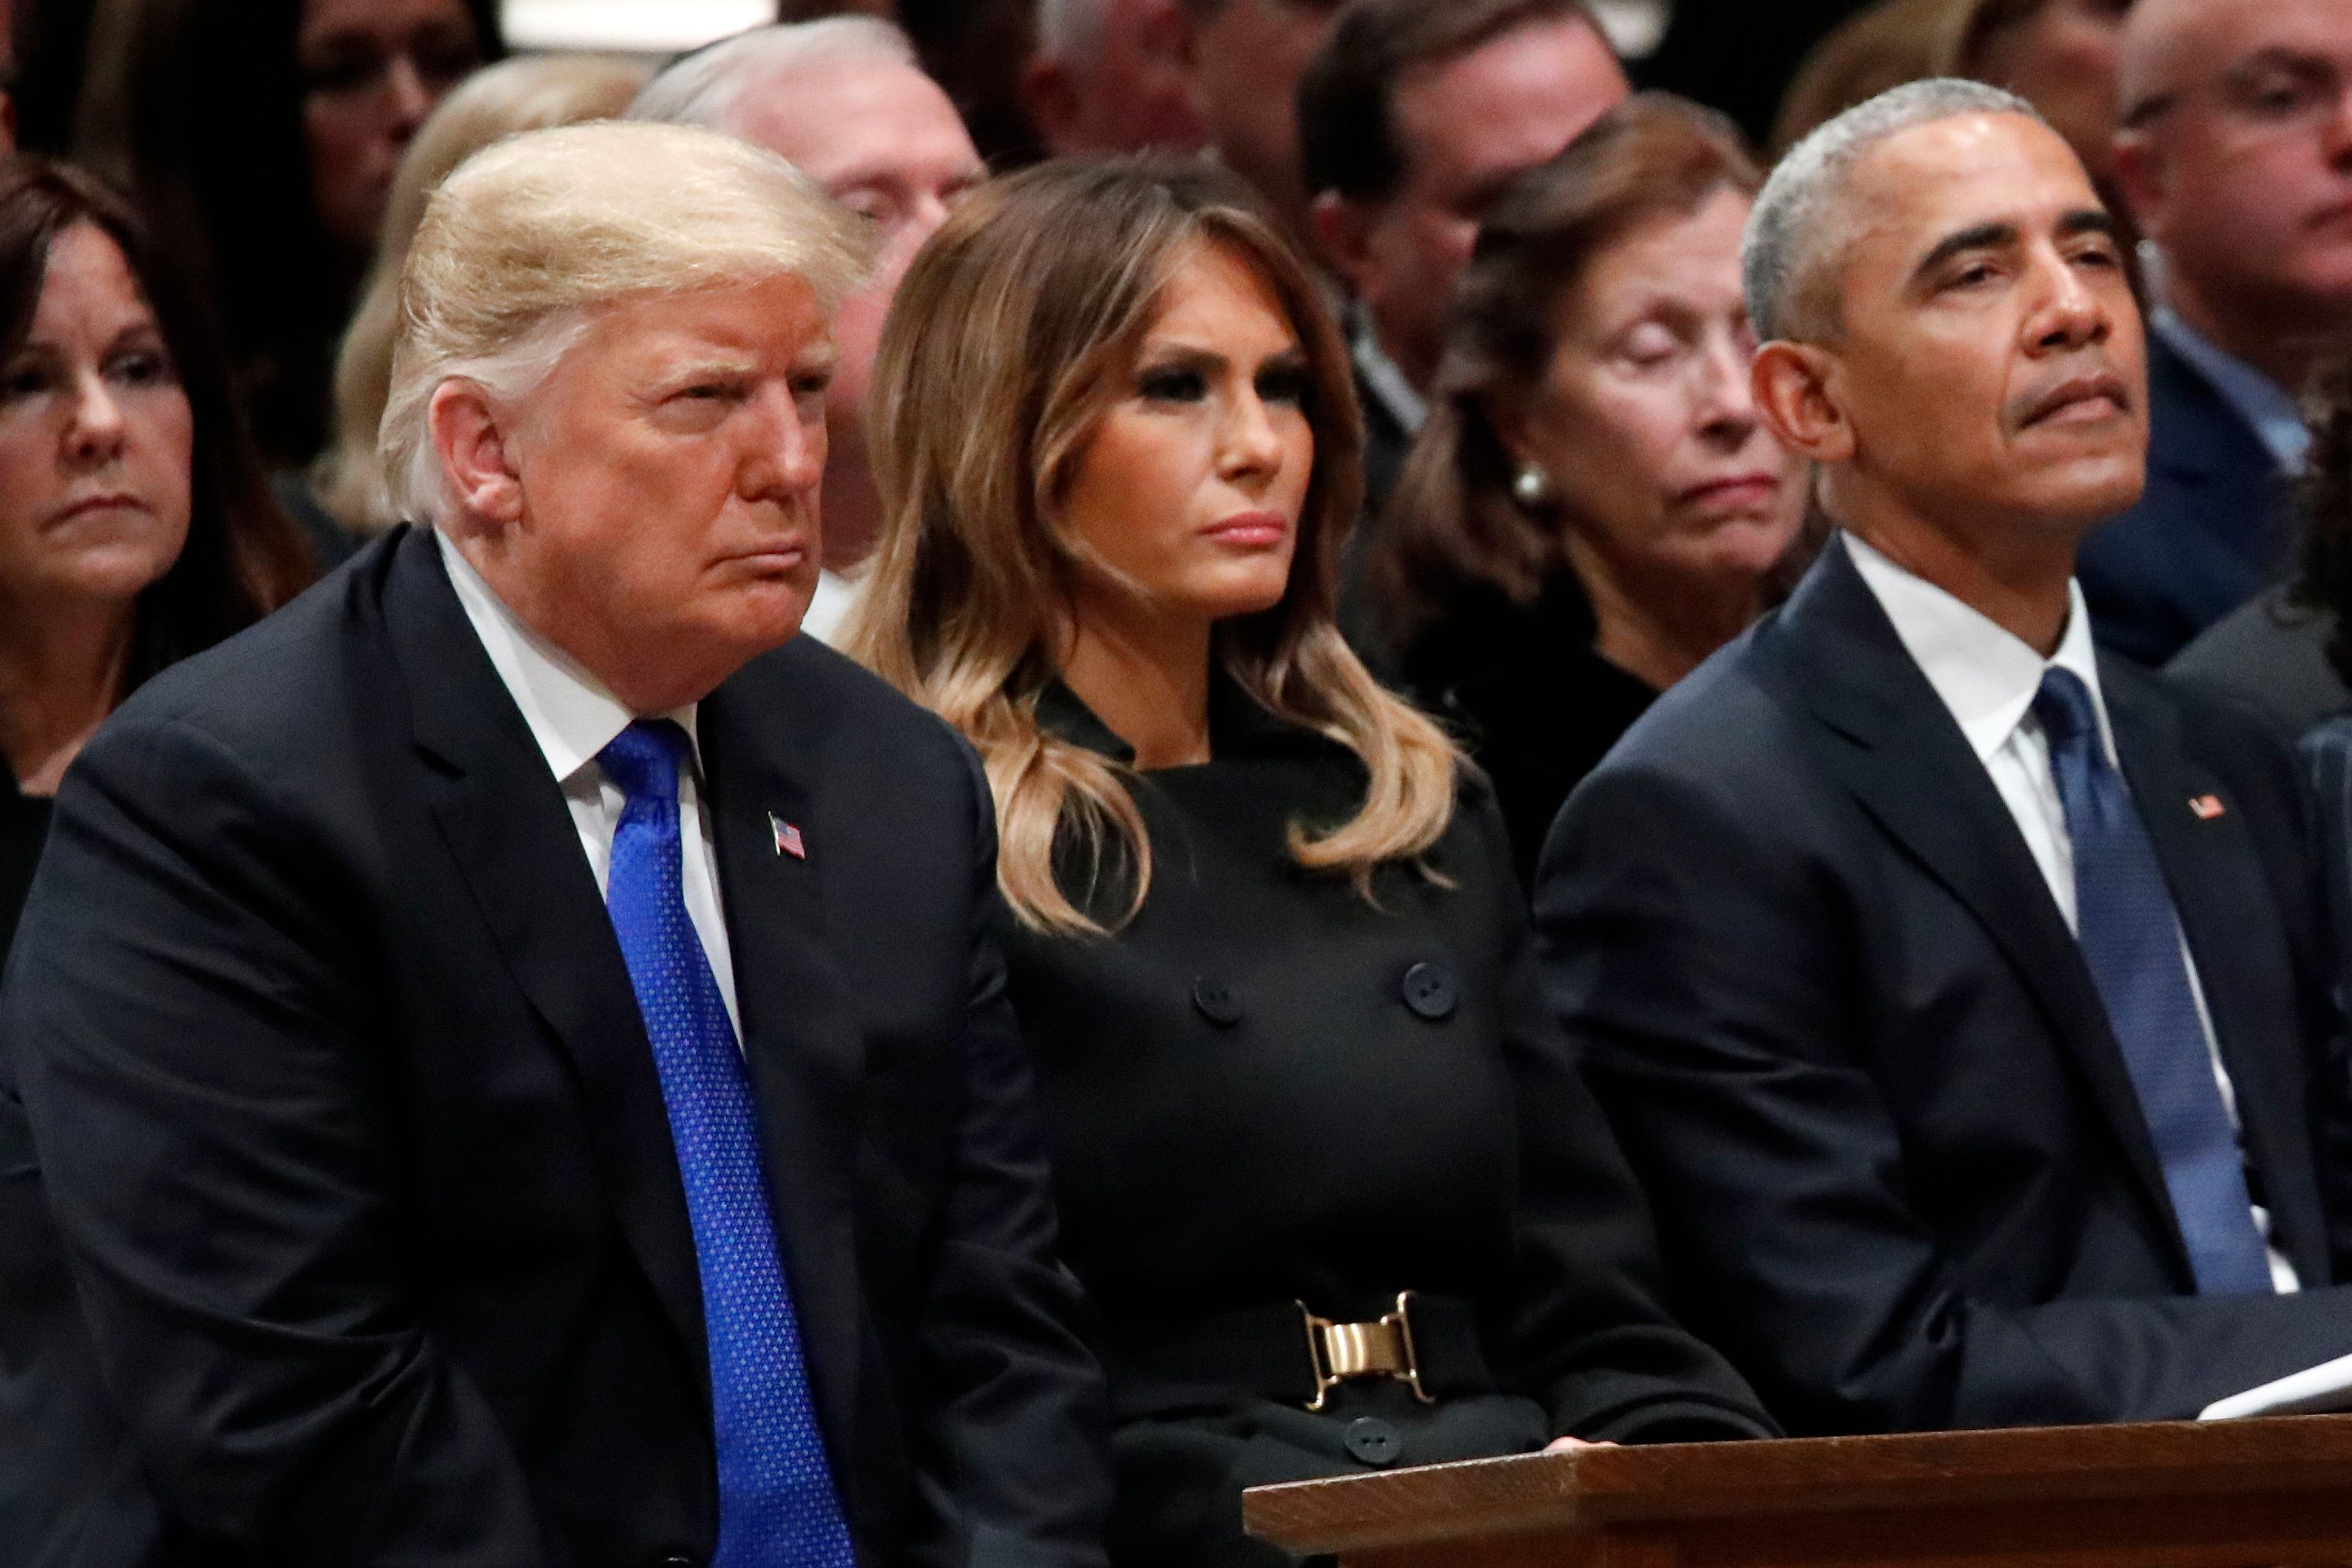 President Donald Trump, first lady Melania Trump and former President Barack Obama listen as former Canadian Prime Minister Brian Mulroney speaks during a State Funeral at the National Cathedral, Wednesday, Dec. 5, 2018, in Washington, for former President George H.W. Bush.(AP Photo/Alex Brandon, Pool)